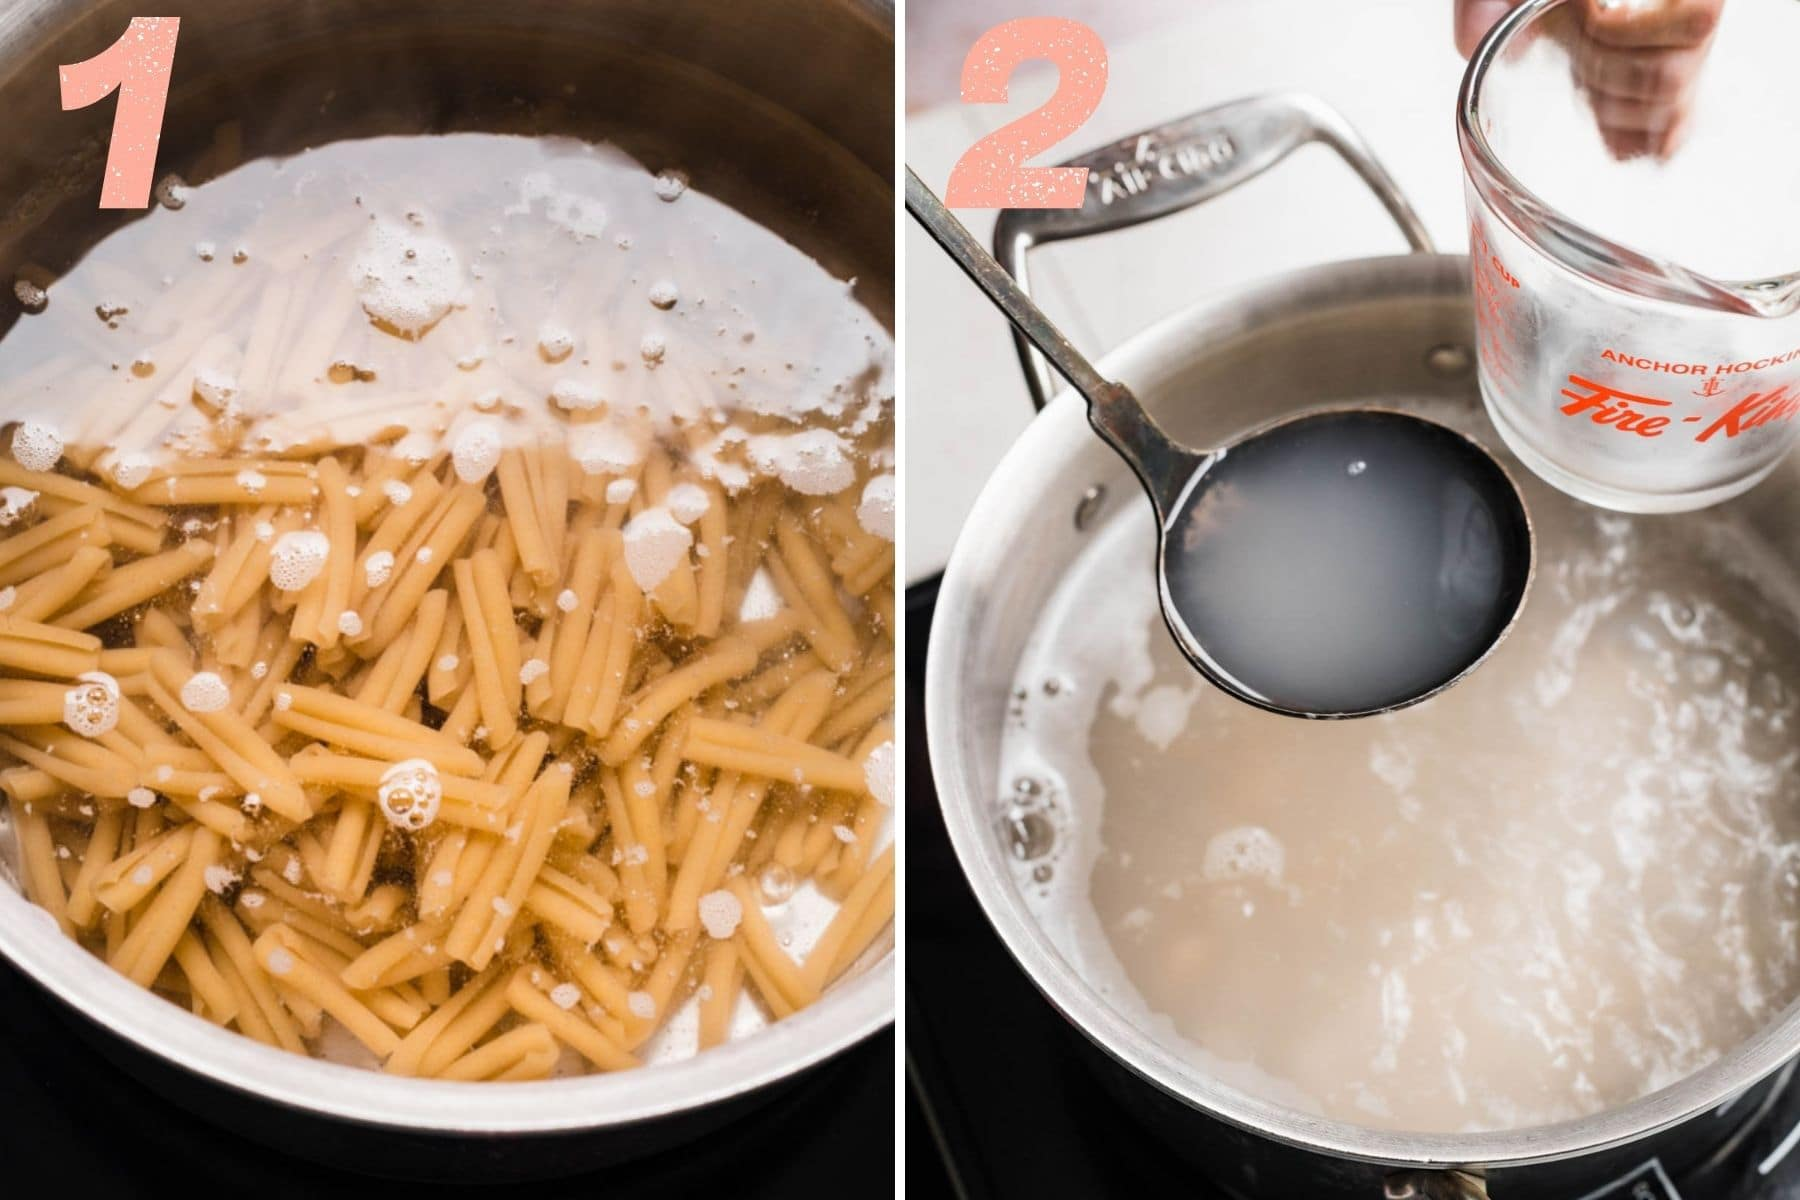 On the left: pasta cooking in water. On the right: removing a ladleful of pasta water from the pot.